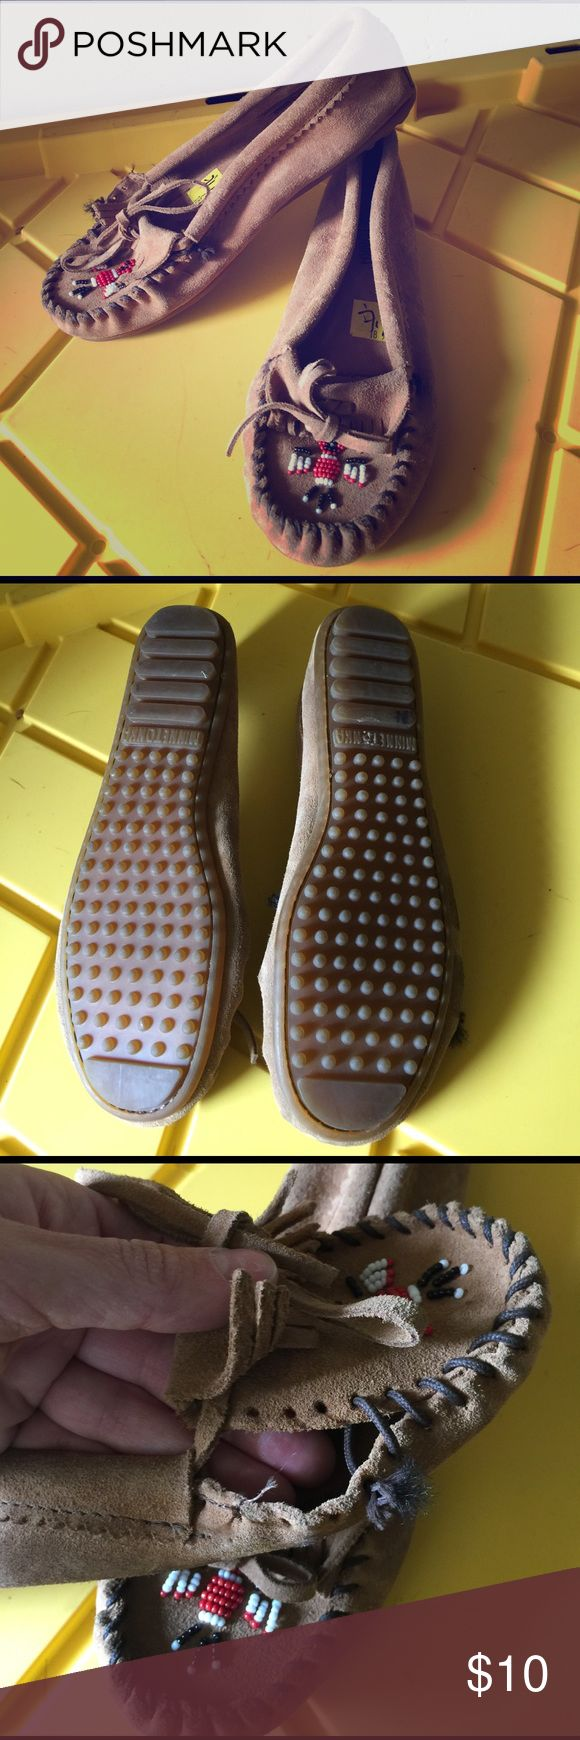 Minnetonka moccasins flats Some of the shoe is coming apart but a very easy fix if u take the time with some thread. Other than that in good condition. Minnetonka Shoes Flats & Loafers